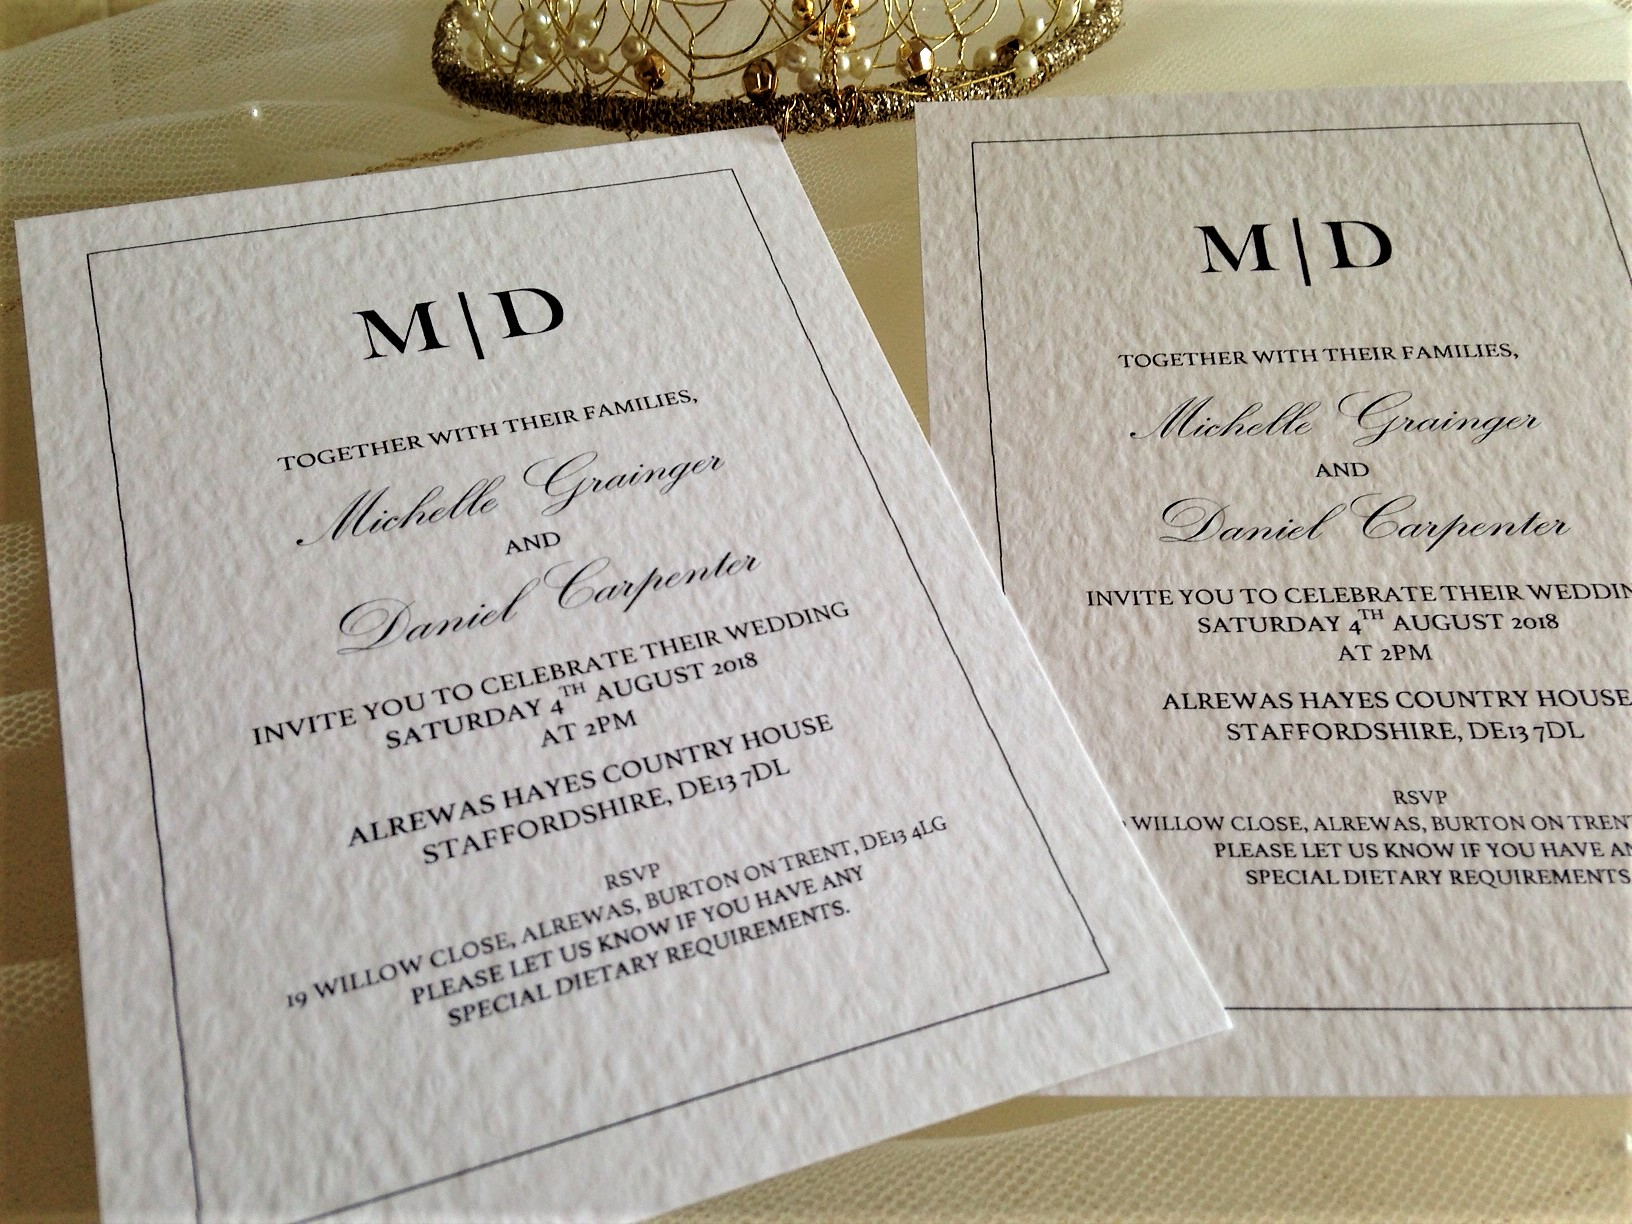 Create Your Own Wedding Invitations: Make Your Own Wedding Invitations, Is There Any Need At